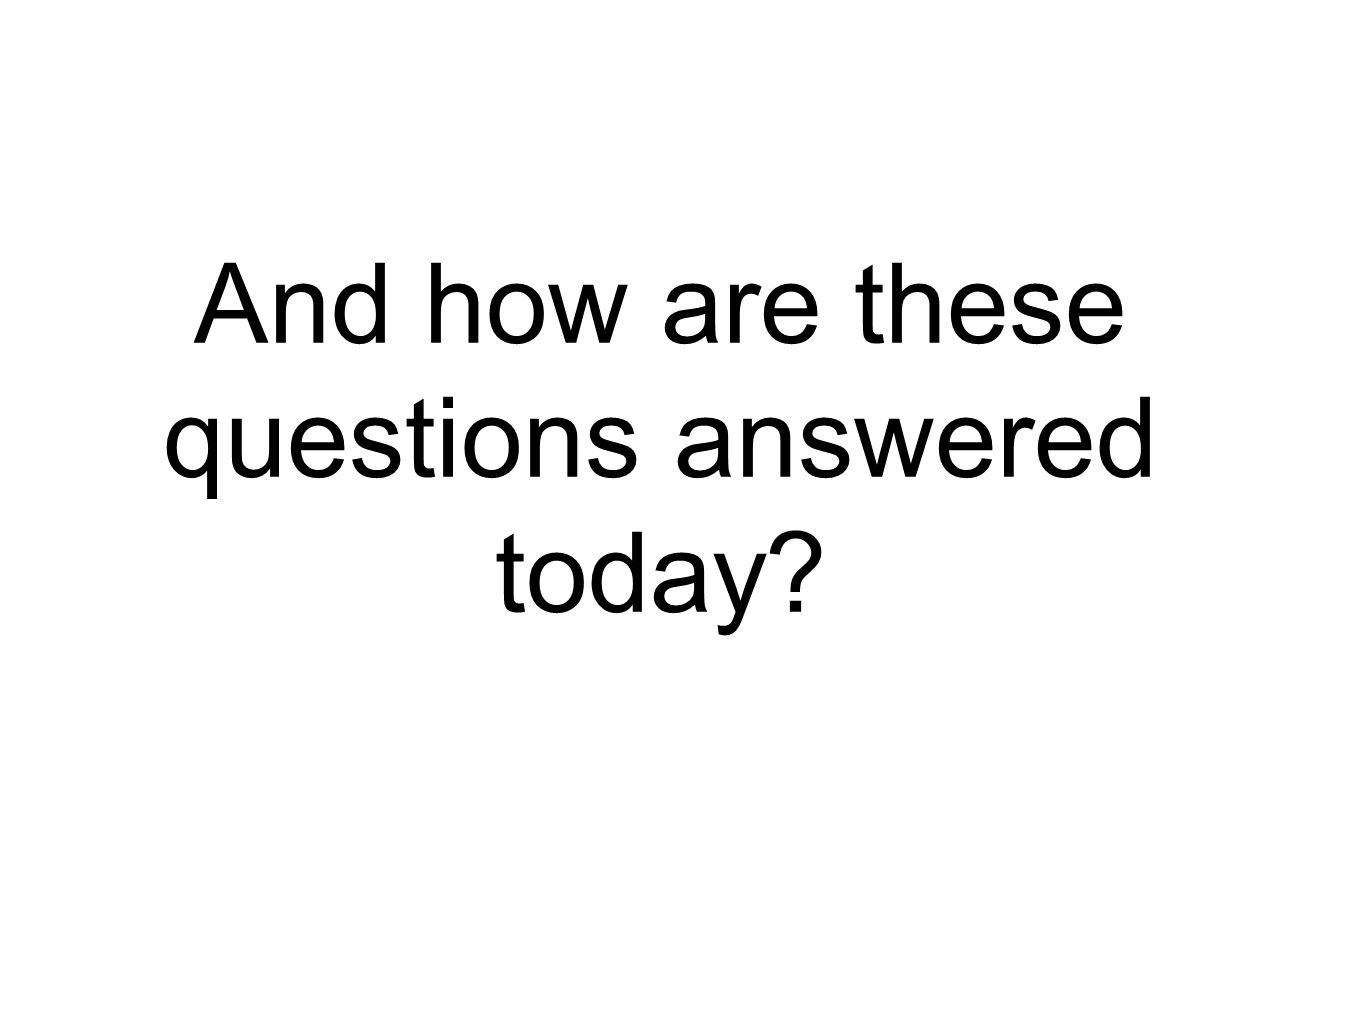 And how are these questions answered today?